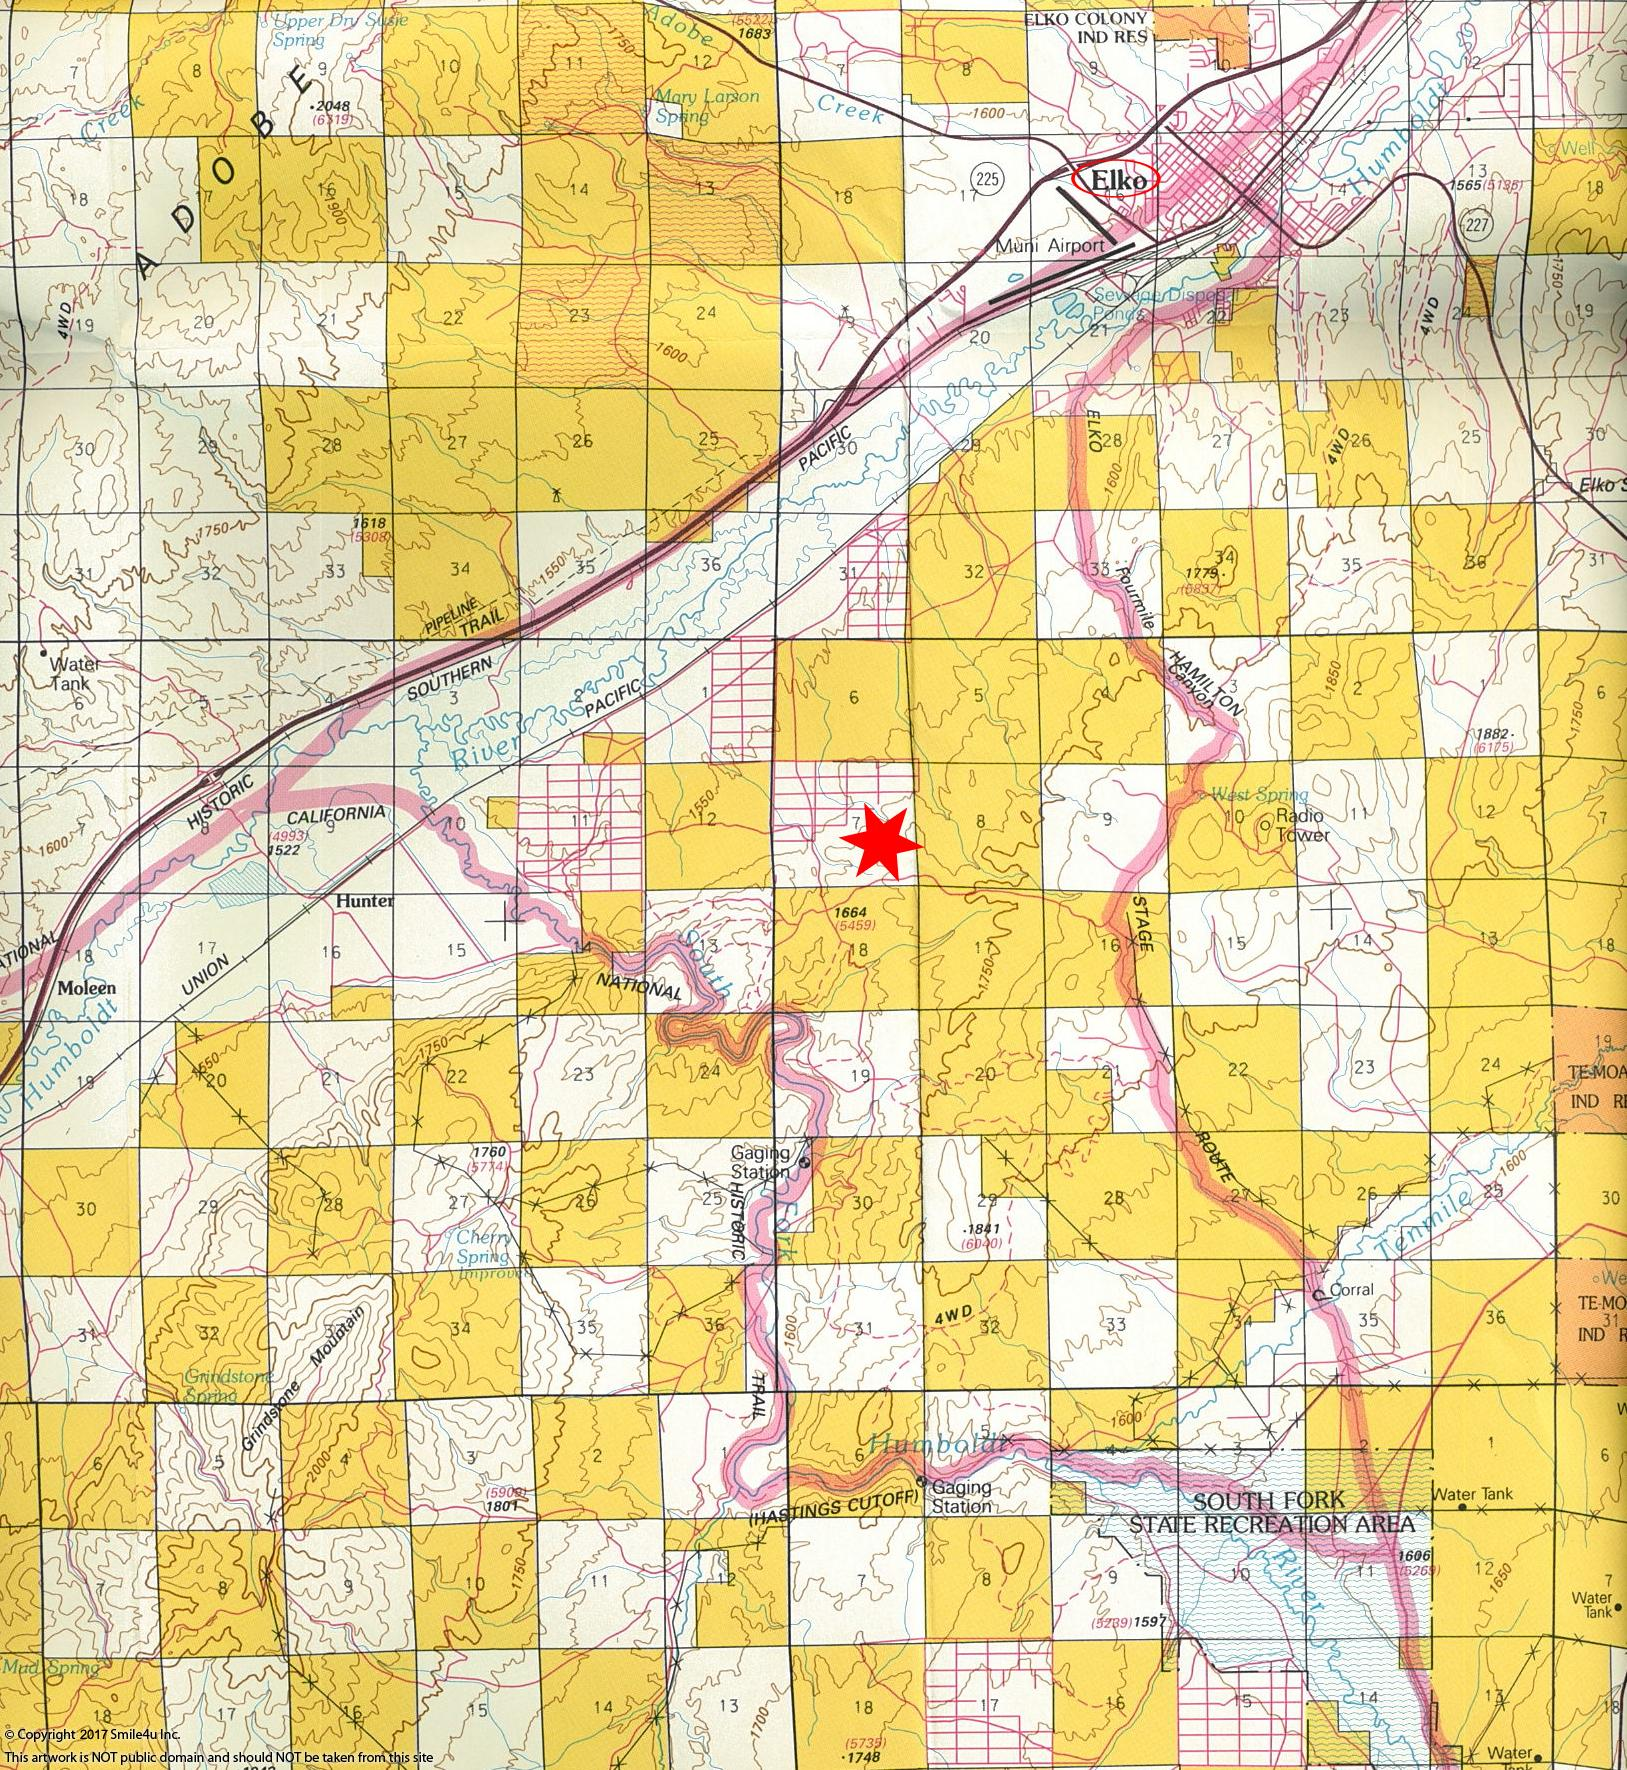 656665_watermarked_blm map.jpg